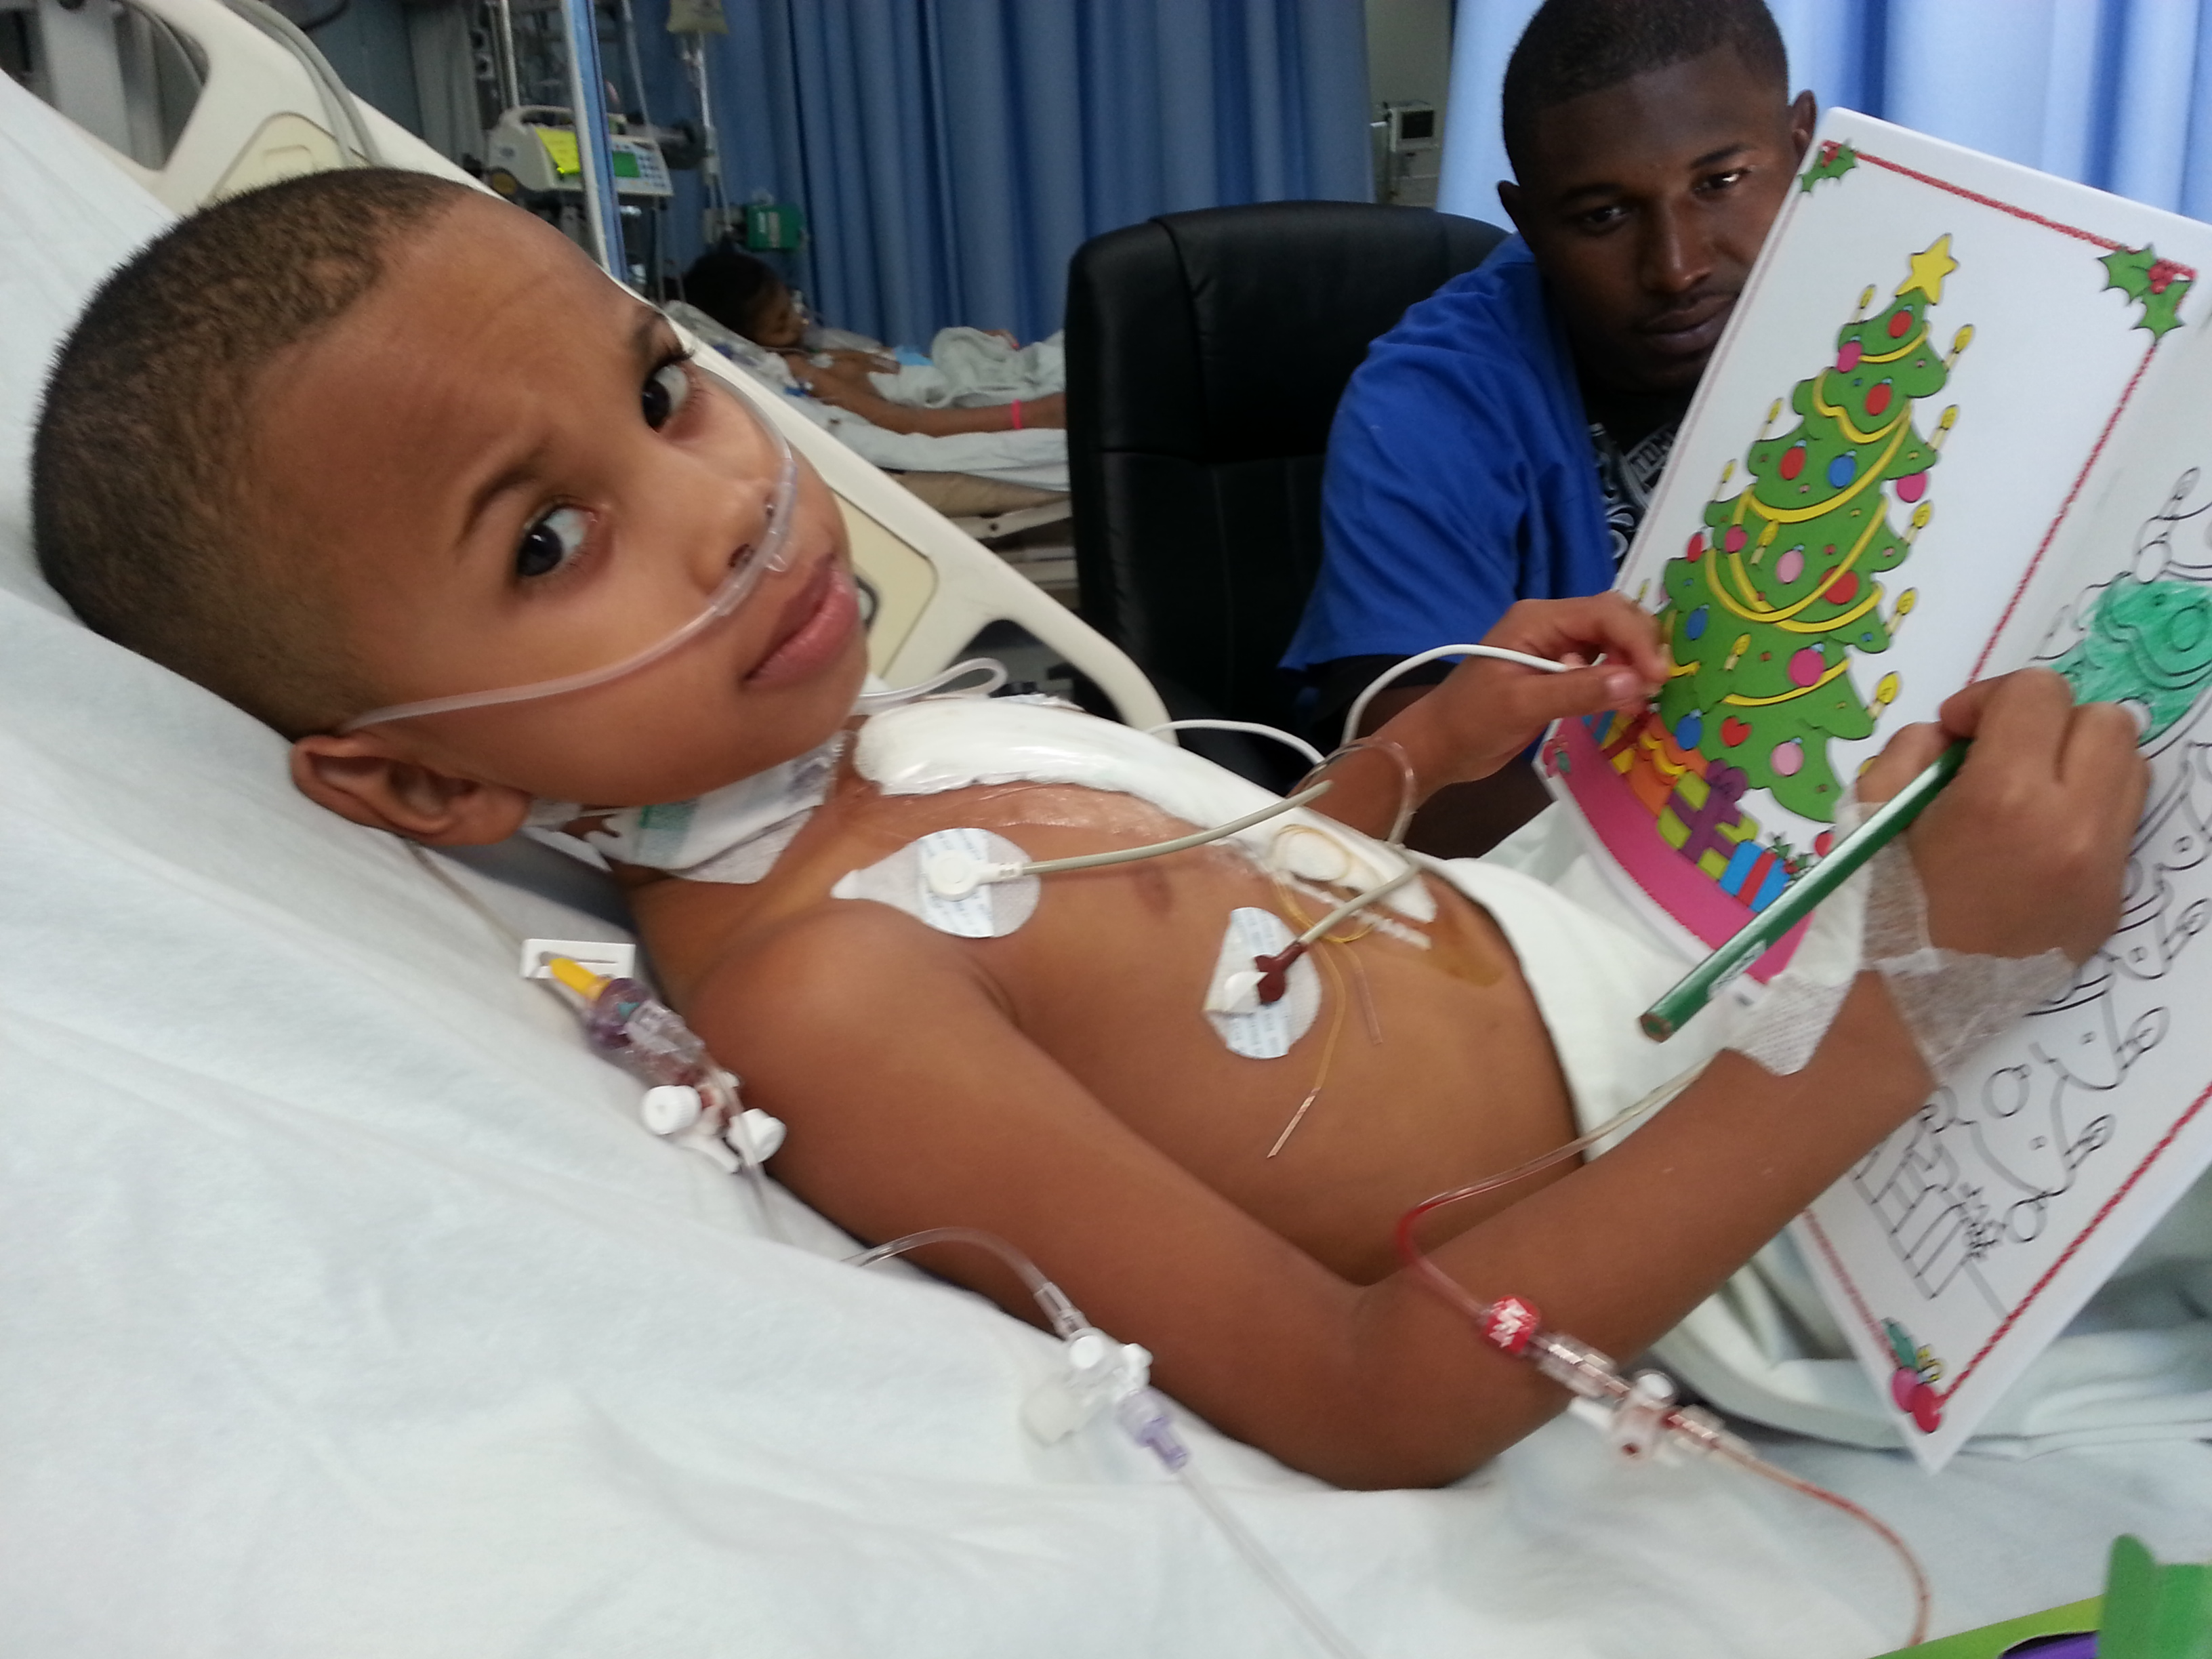 Hazell, a child who received open-heart surgery from Surgeons of Hope